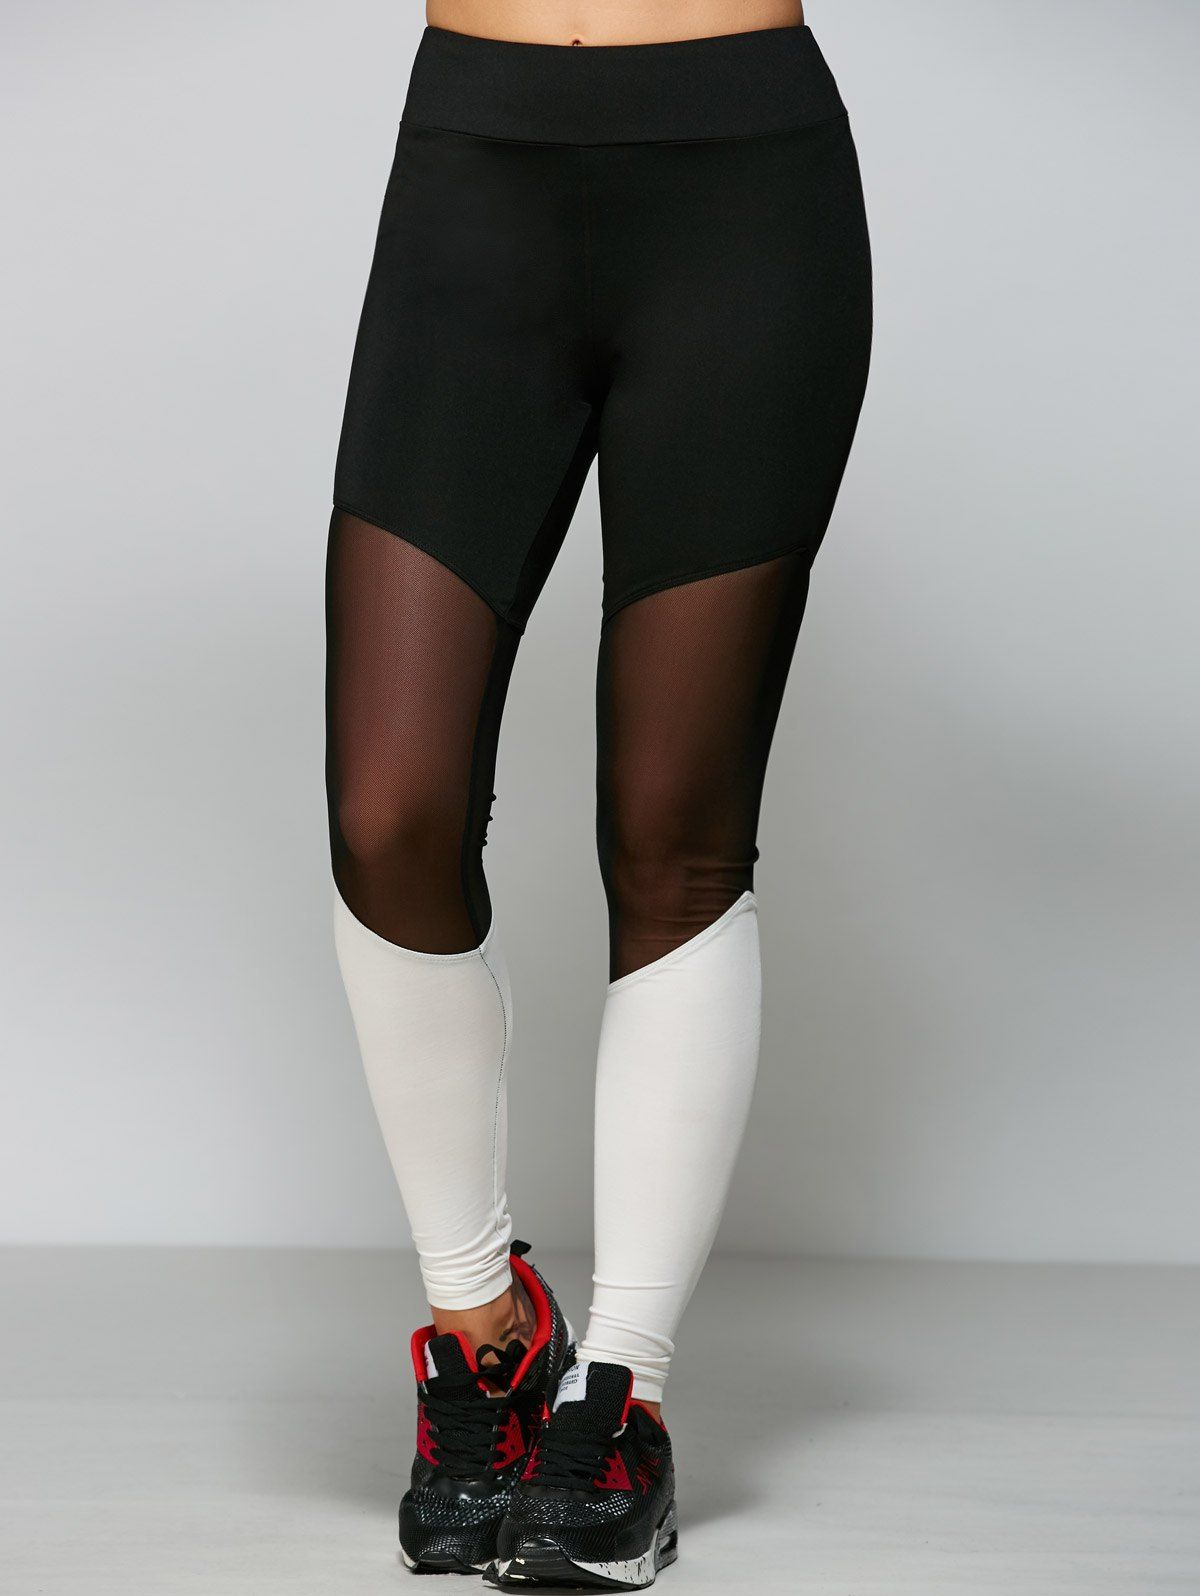 519c8549387ead Only $18.99 for Mesh Panel Tight Fit Leggings | ACTIVEWEAR | Workout ...